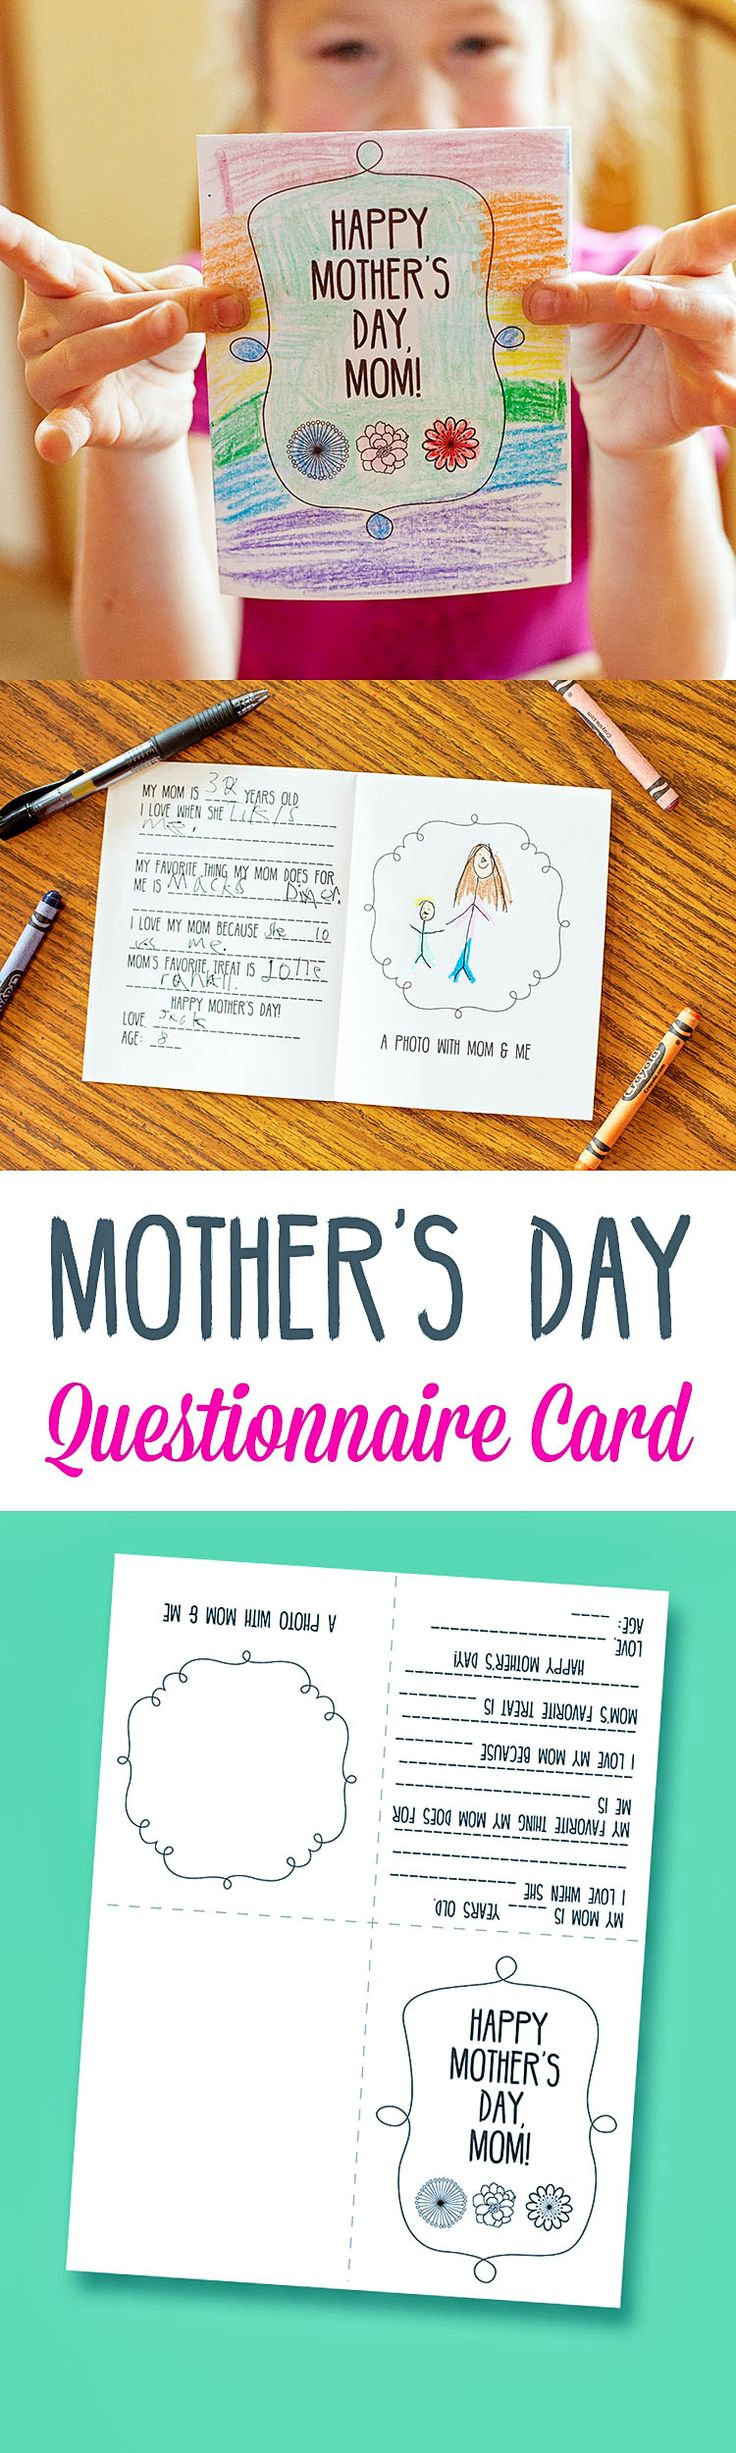 Mother's Day Questionnaire Fill-In Card Printable - cute idea for the kids to make on Mother's Day!